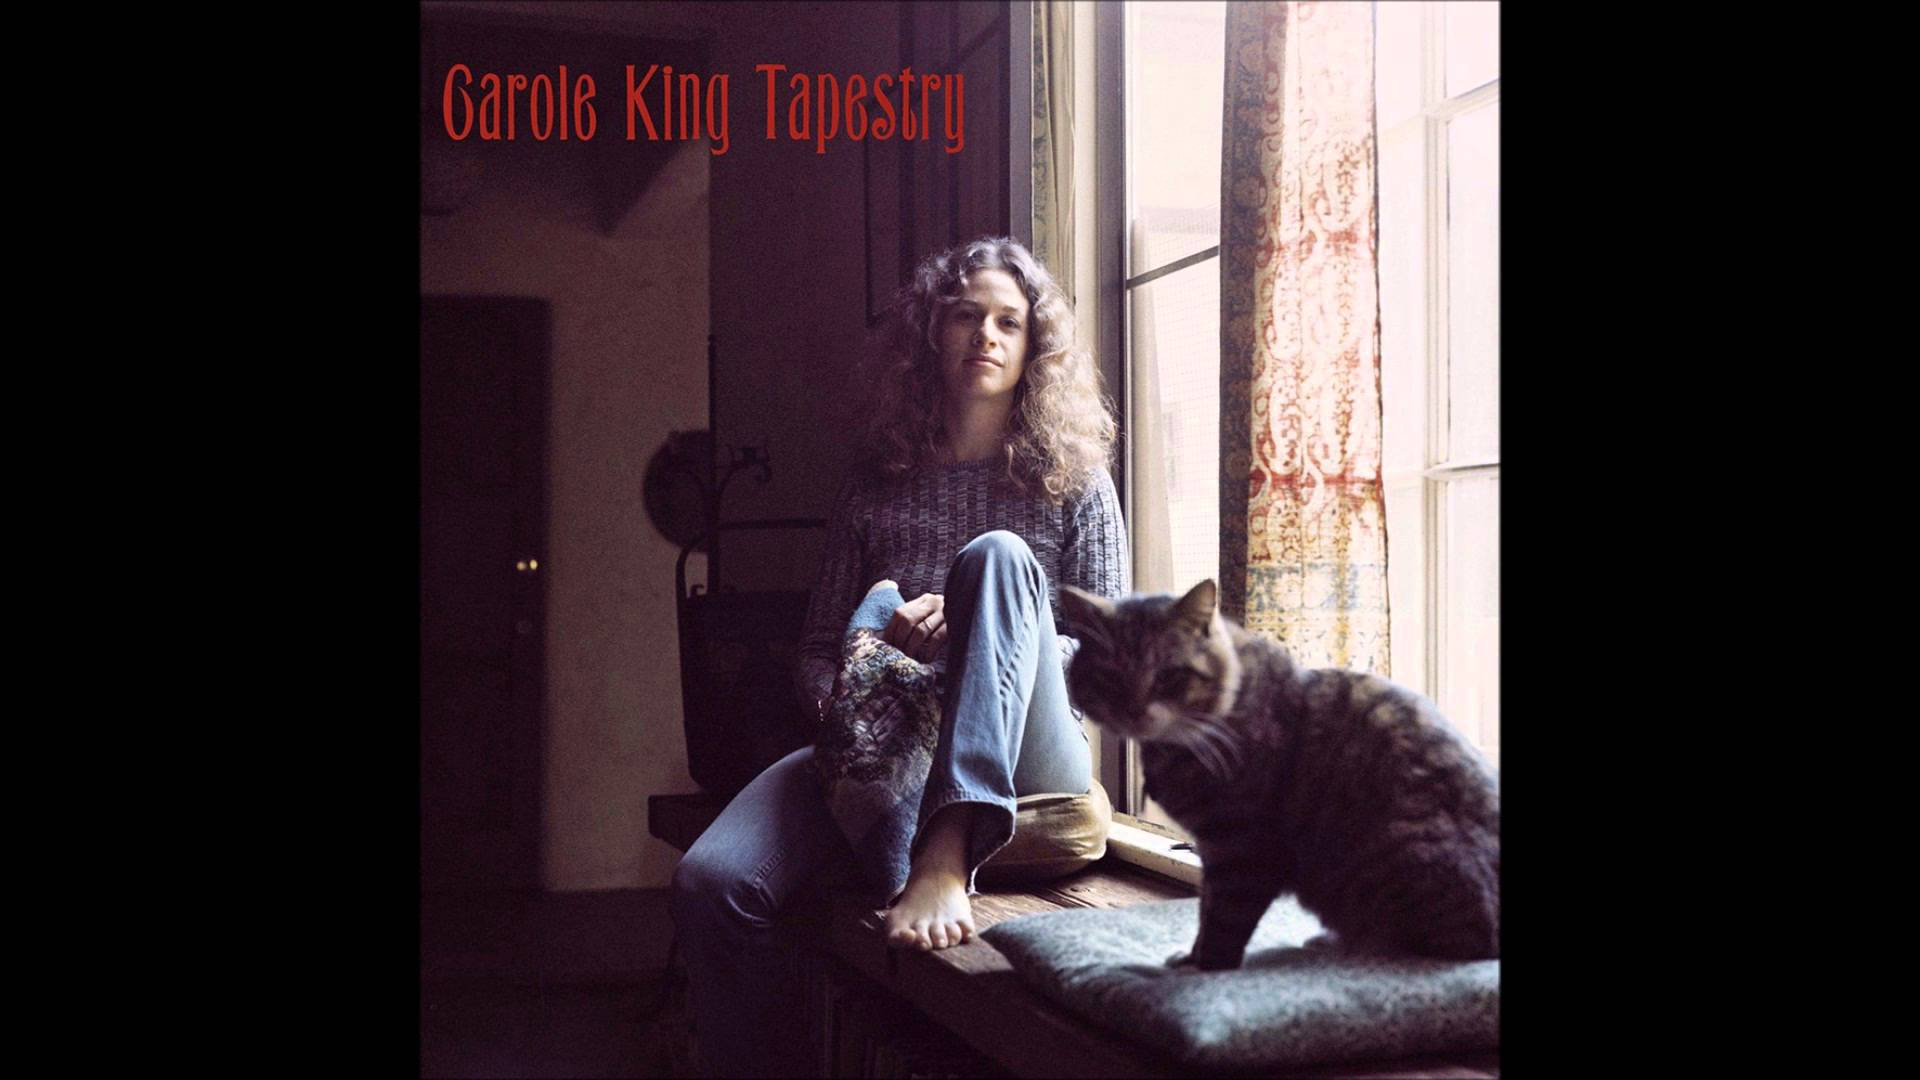 Carole king reflects on tapestry album from billboard magazine for Carole king living room tour